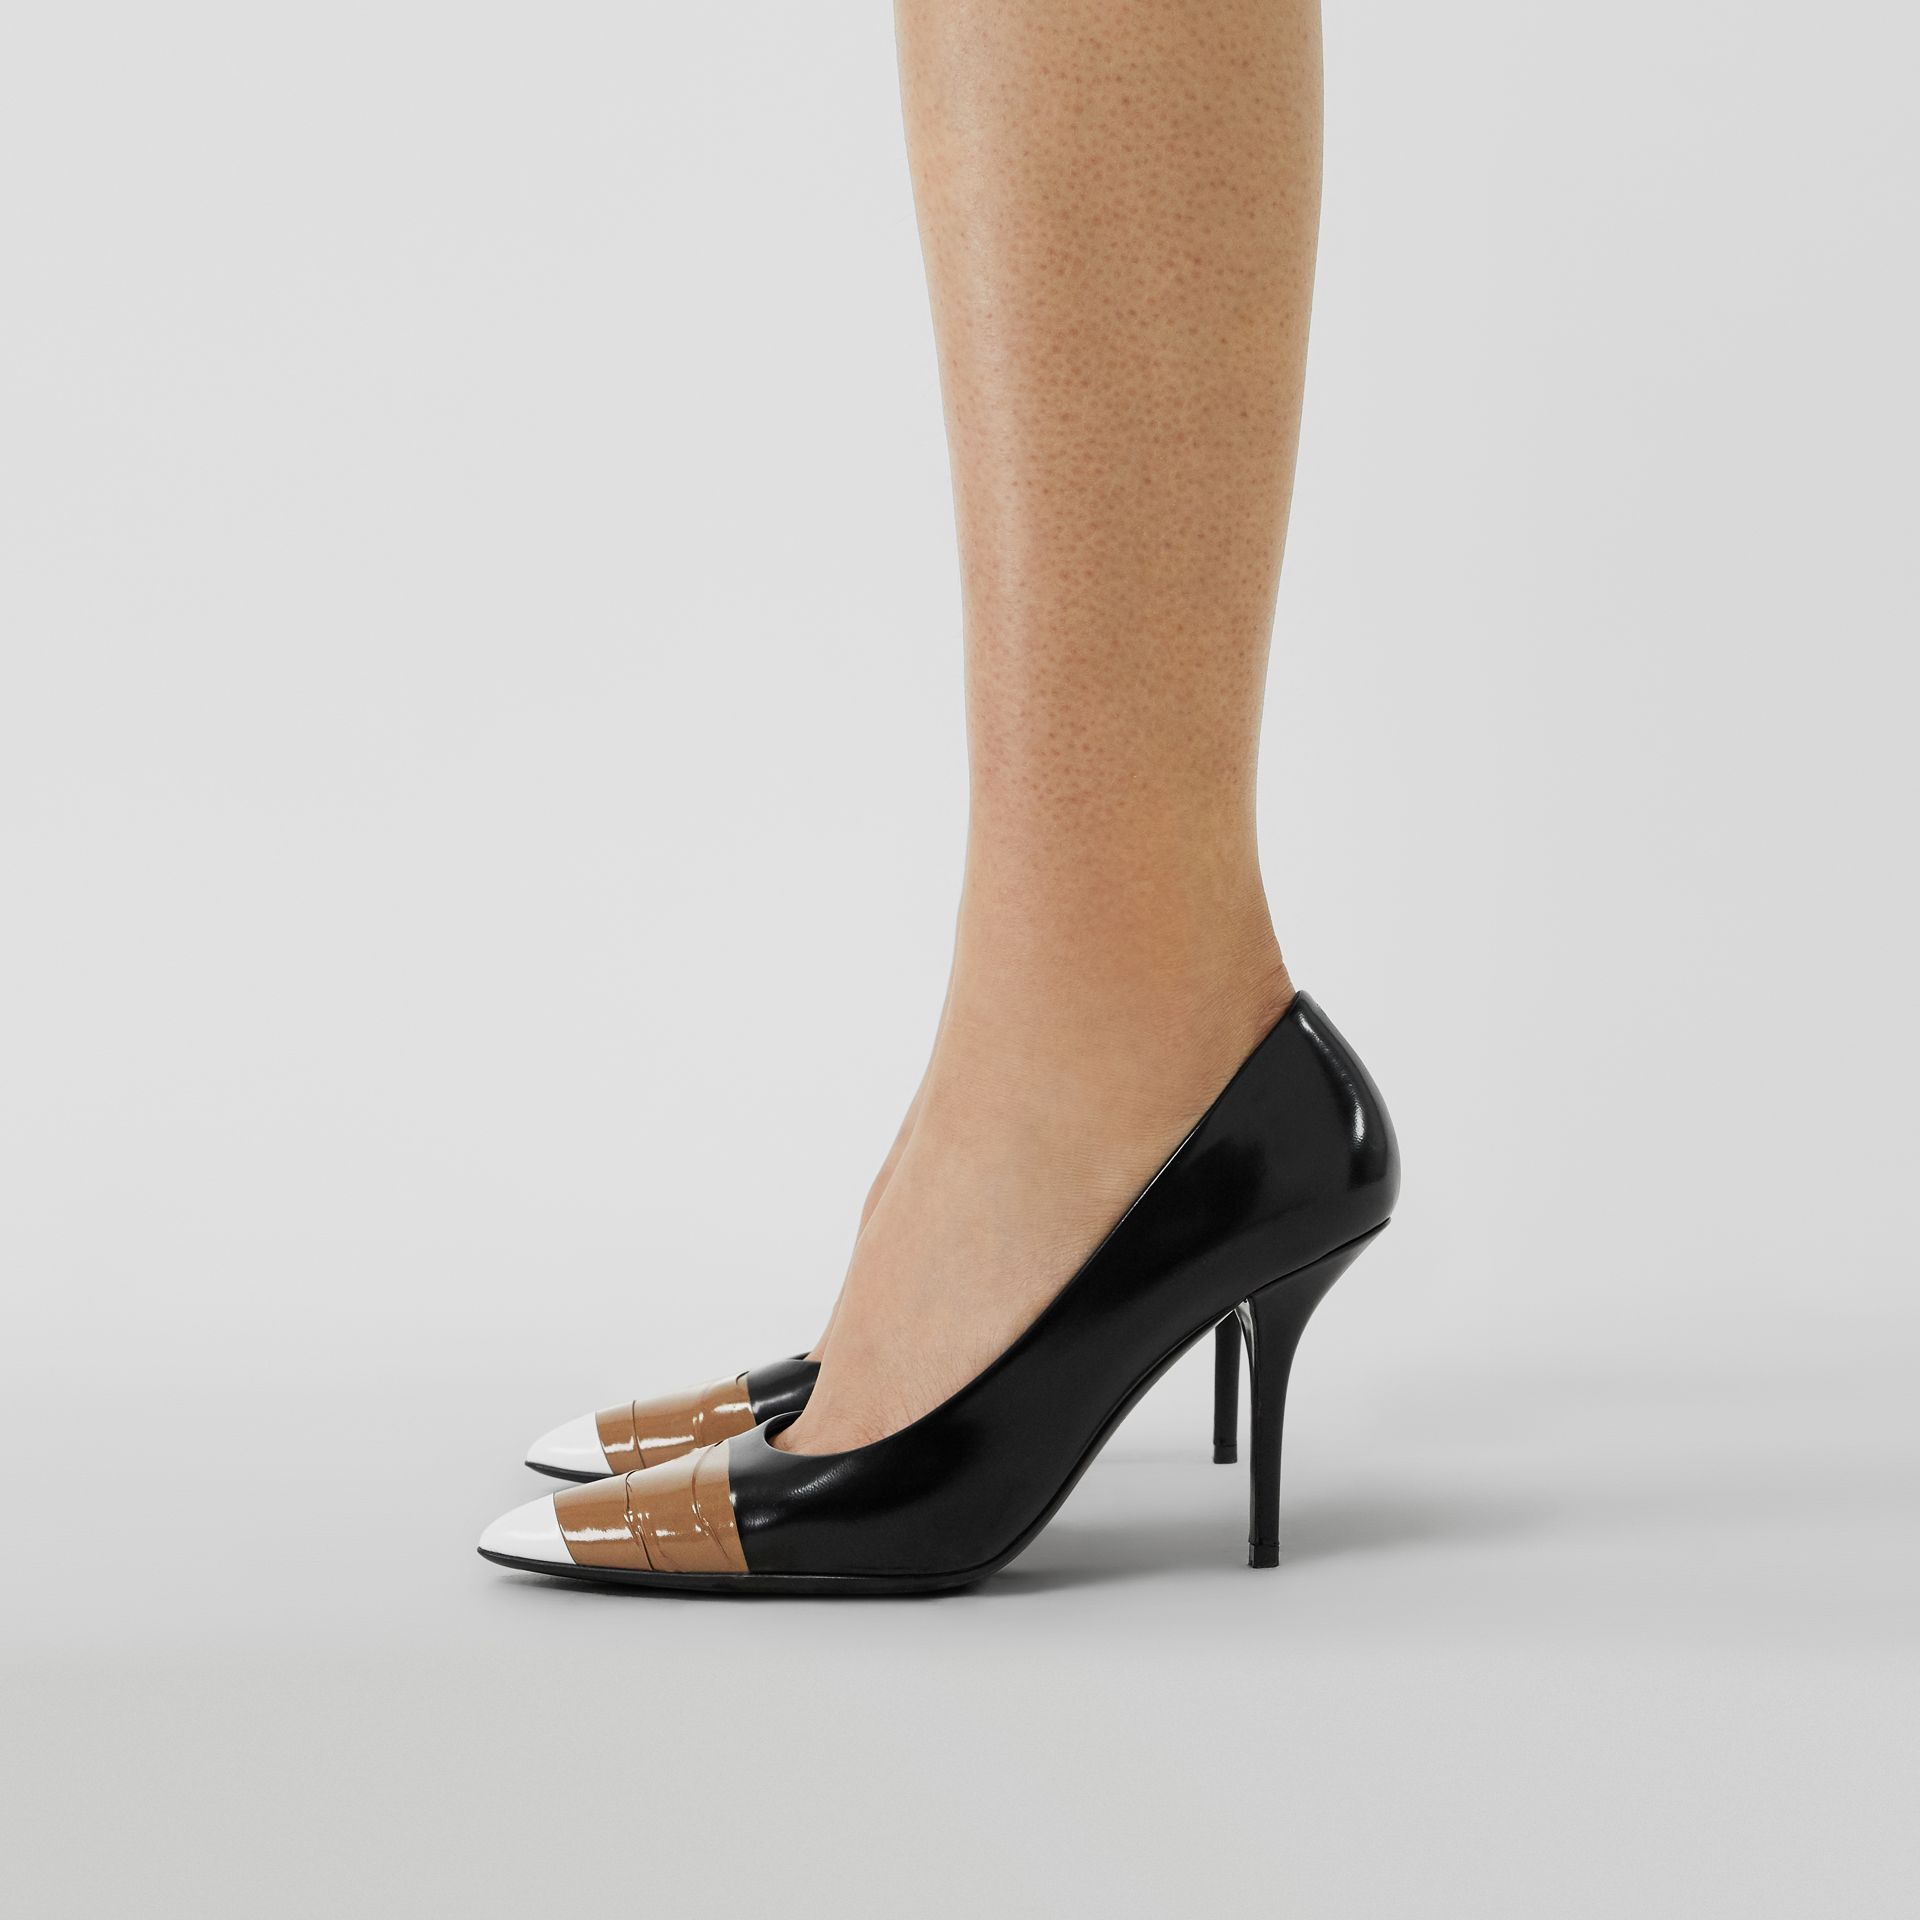 Tape Detail Leather Pumps in Black/optic White - Women | Burberry Canada - gallery image 4